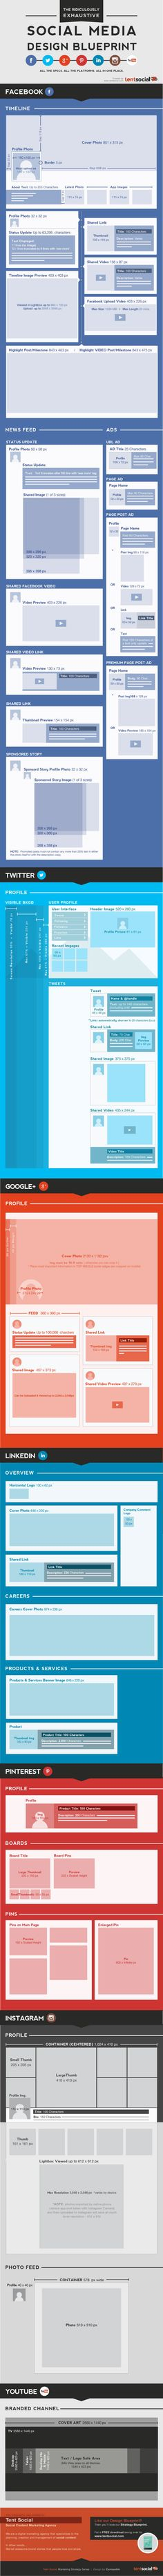 Image size cheat sheet for all the major social media sites - http://htwp2.com/image-size-cheat-sheet/